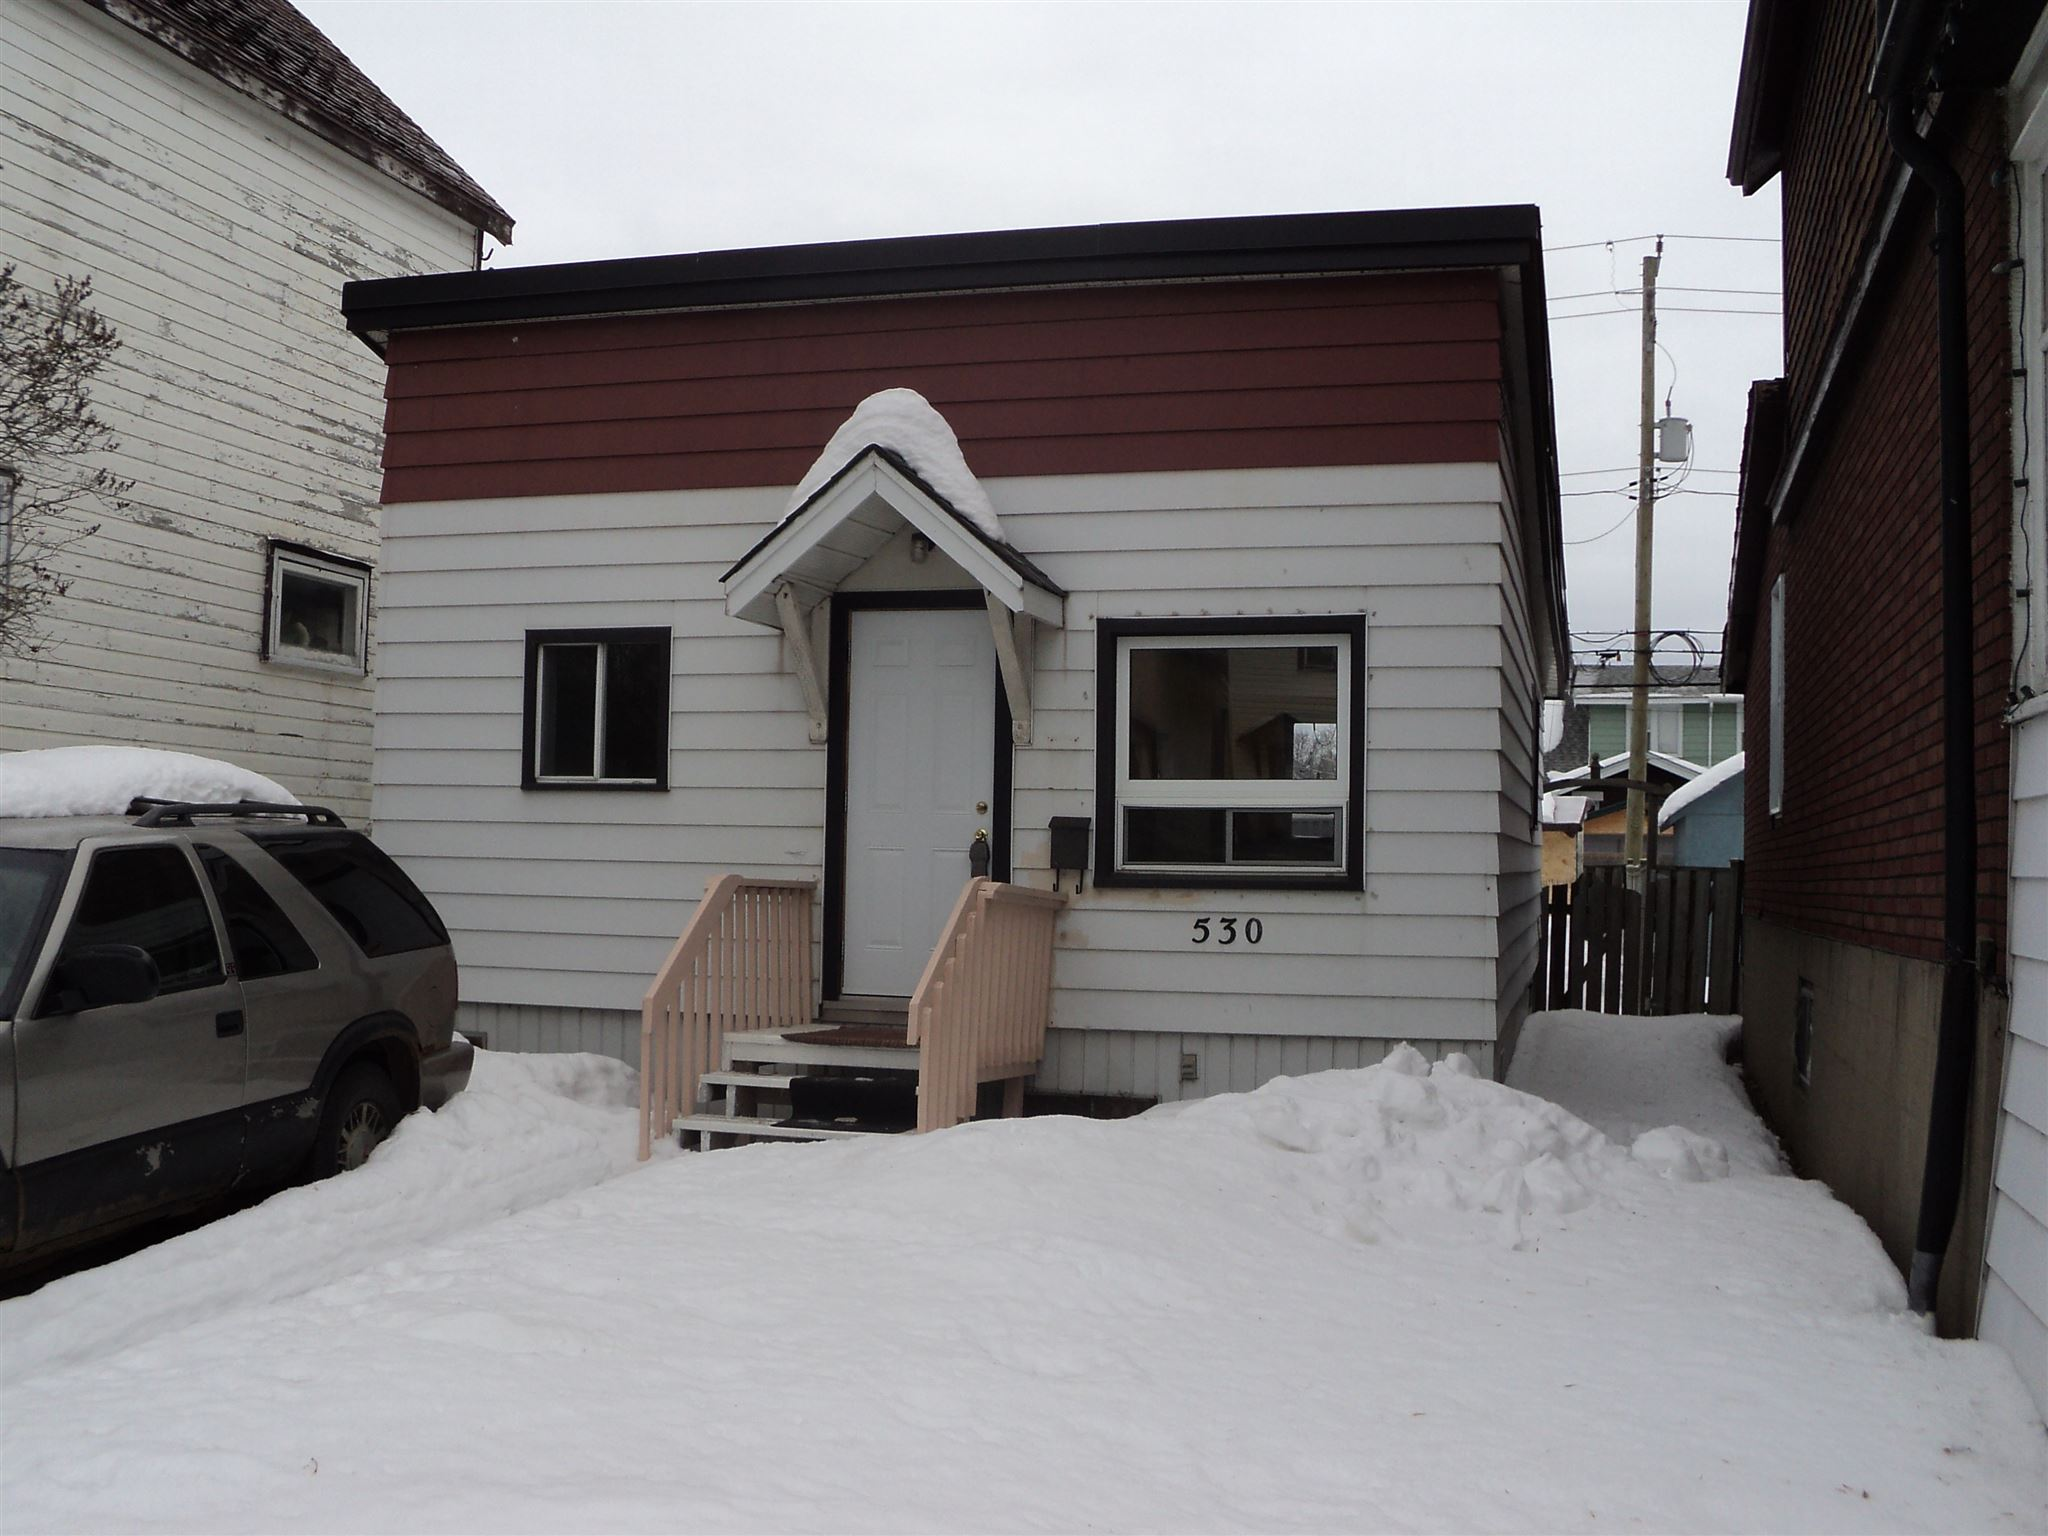 530 Wiley Street, Thunder Bay Ontario, Canada